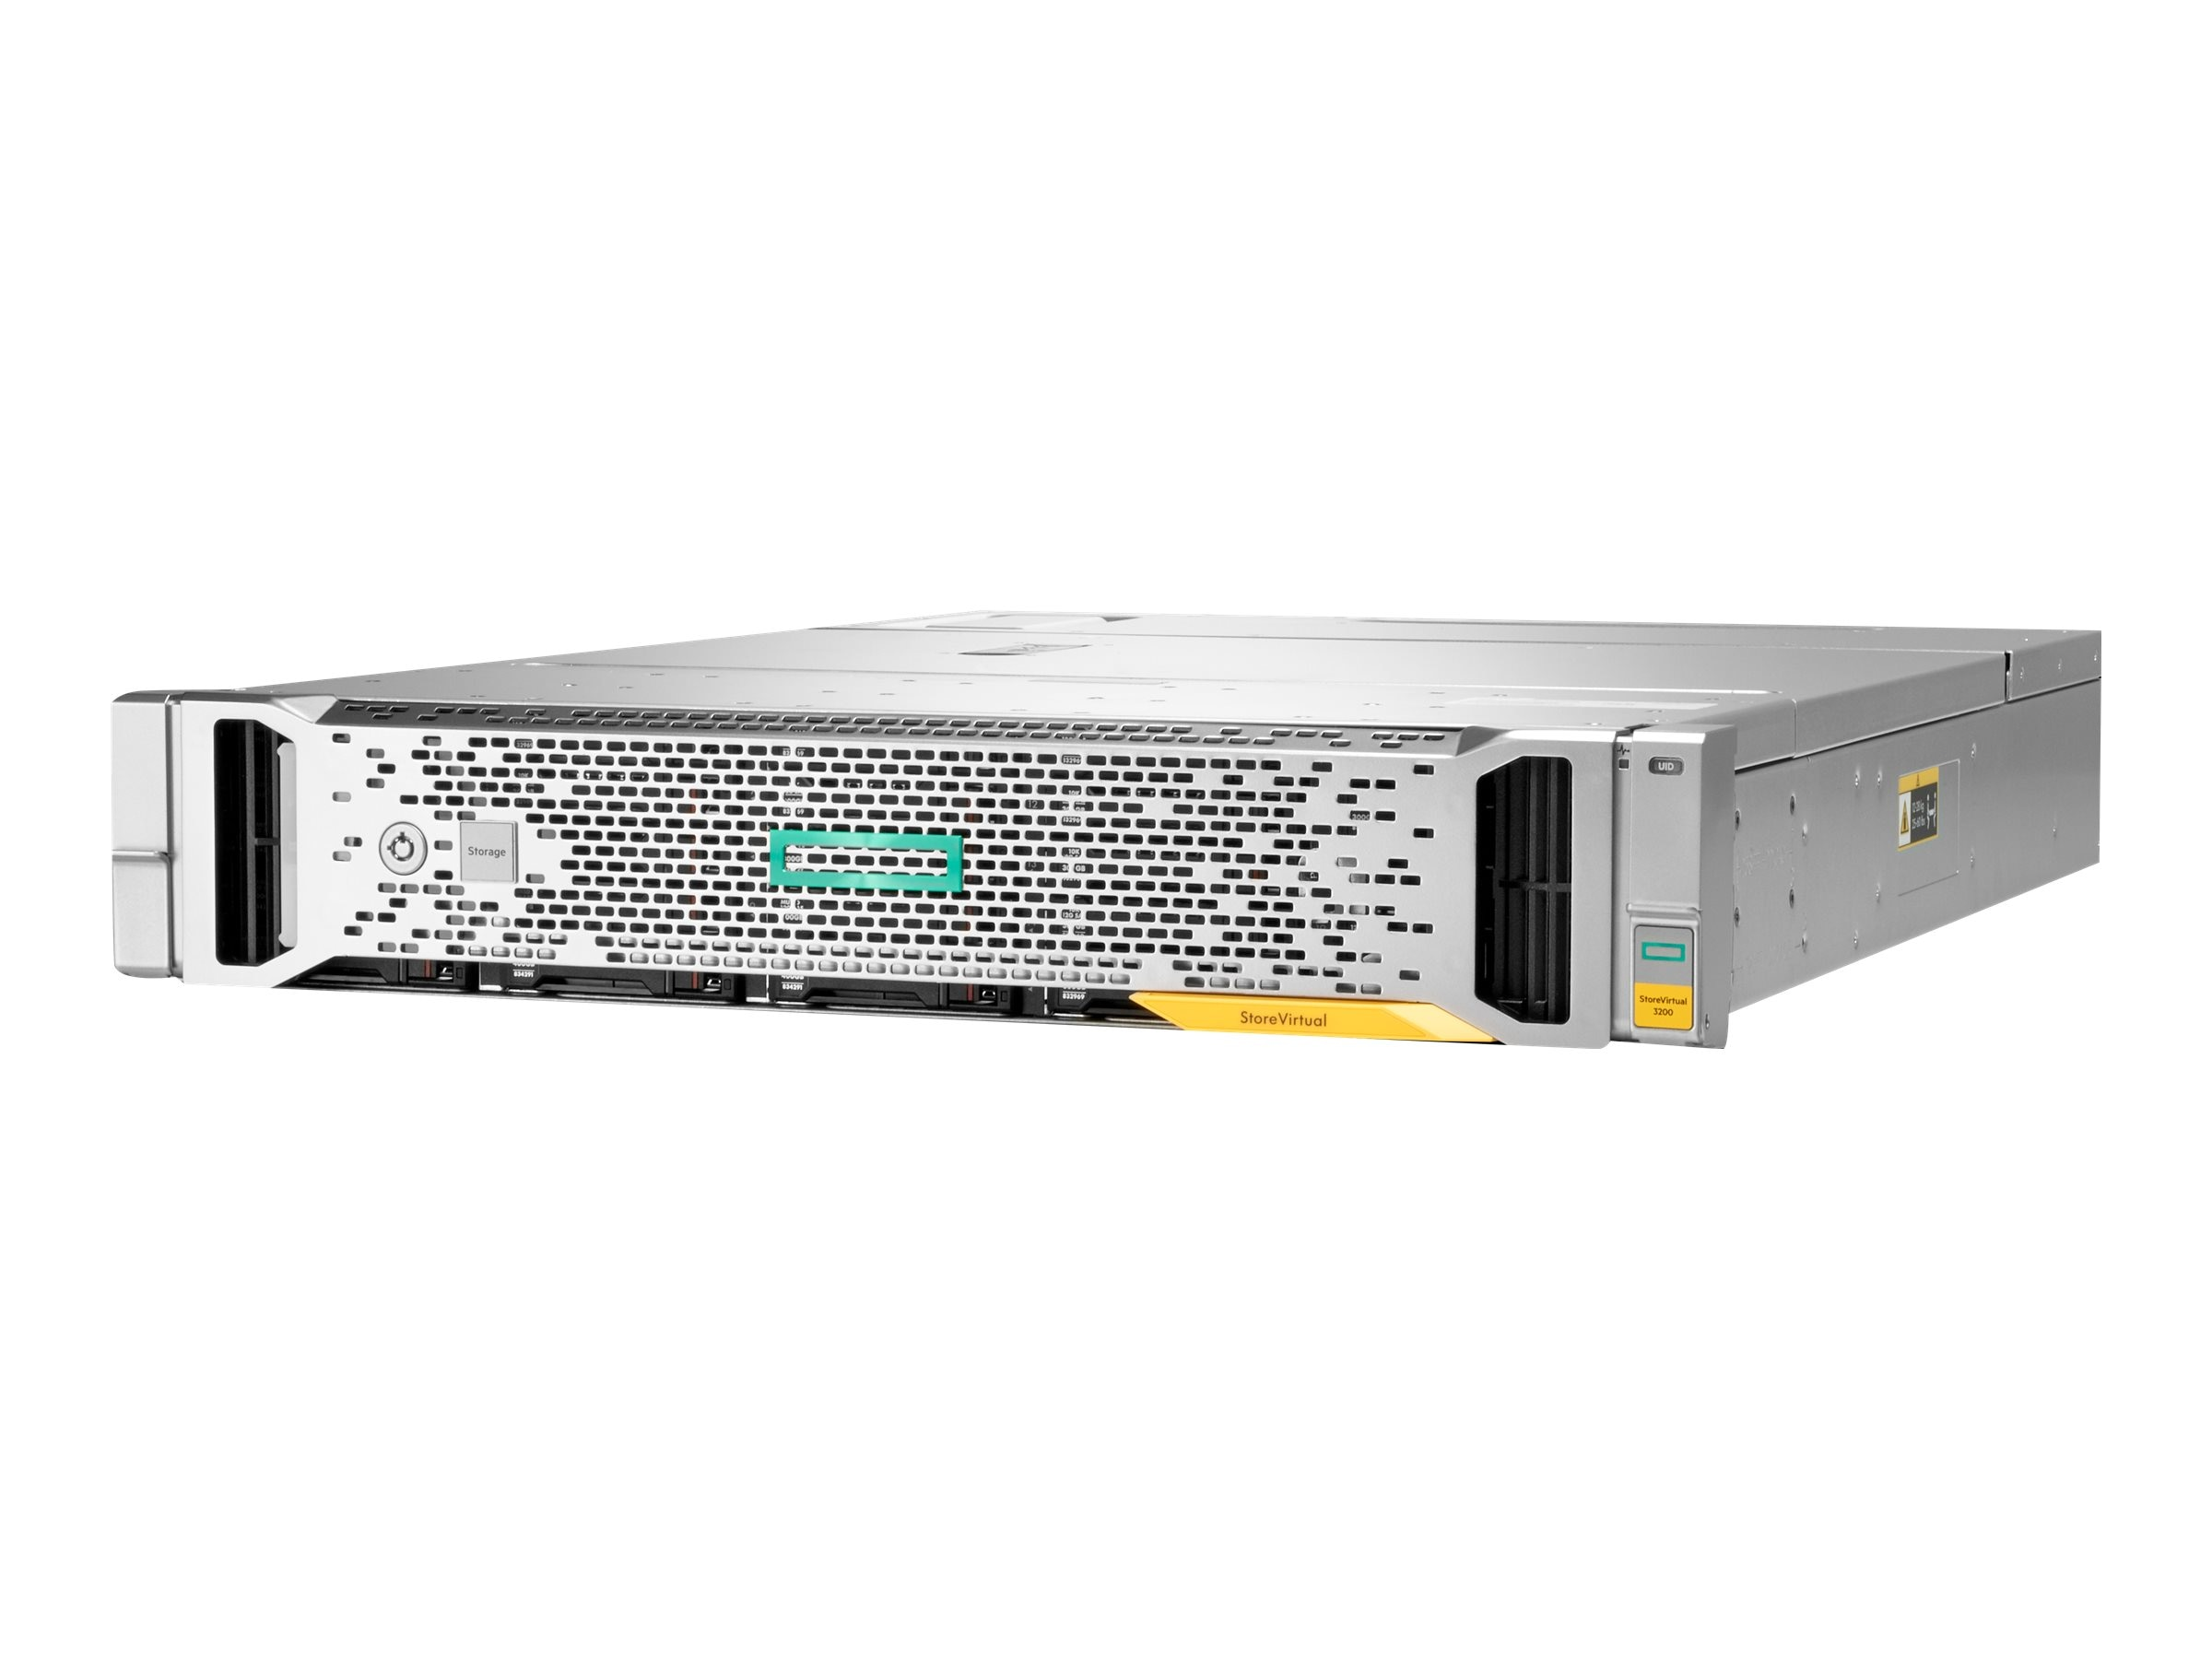 HPE StoreVirtual 3200 4-port 1GbE iSCSI 600GB SFF Storage Bundle